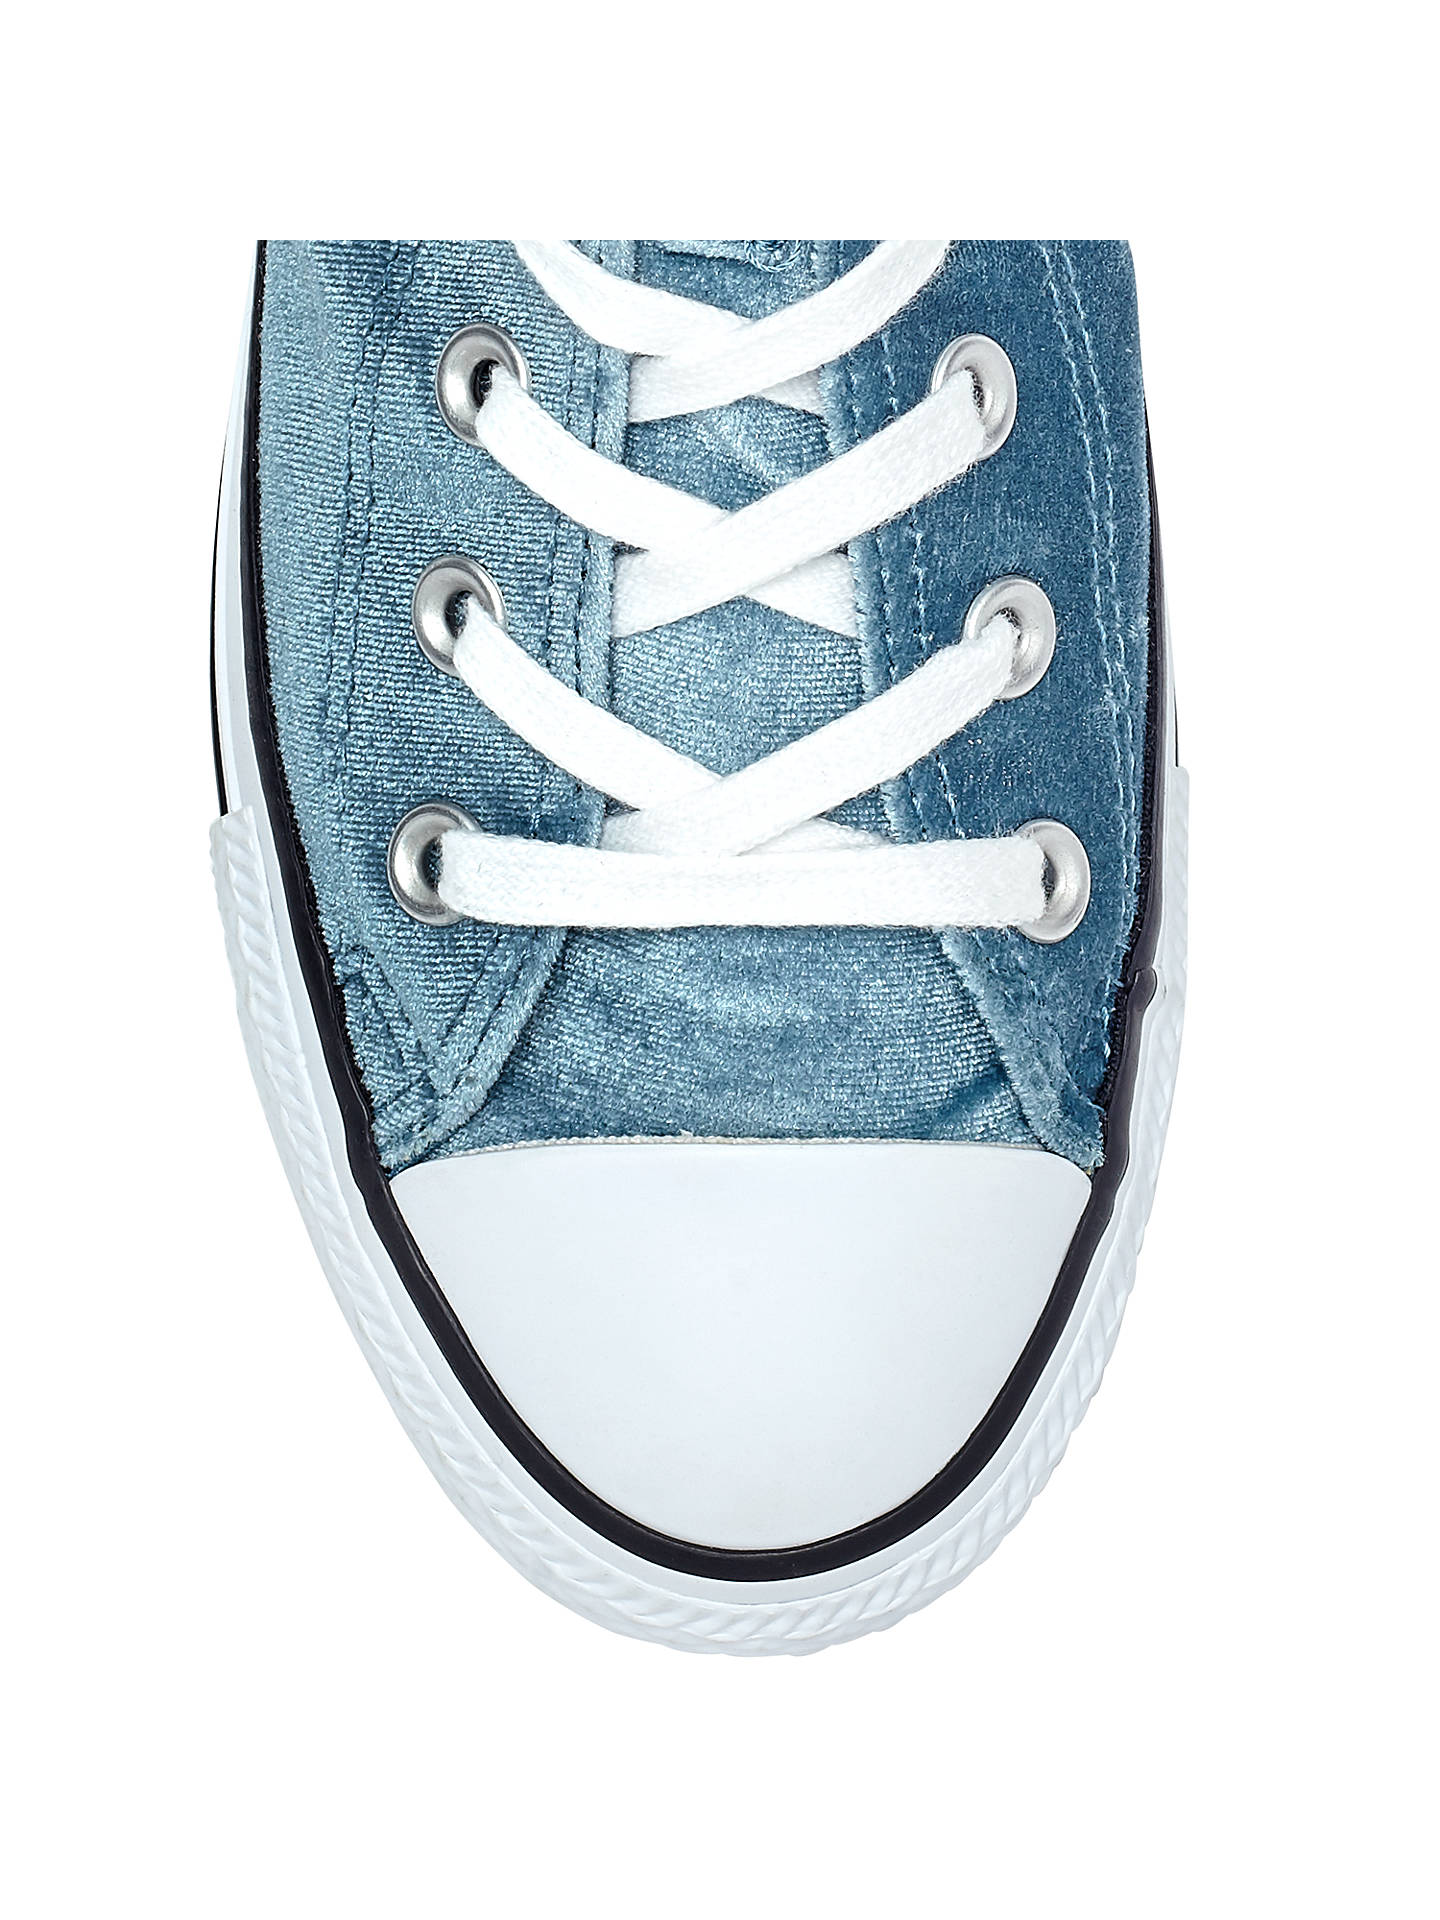 leninismo Culo Elástico  Converse Chuck Taylor All Star Velvet Hi-Top Trainers, Teal at John Lewis &  Partners